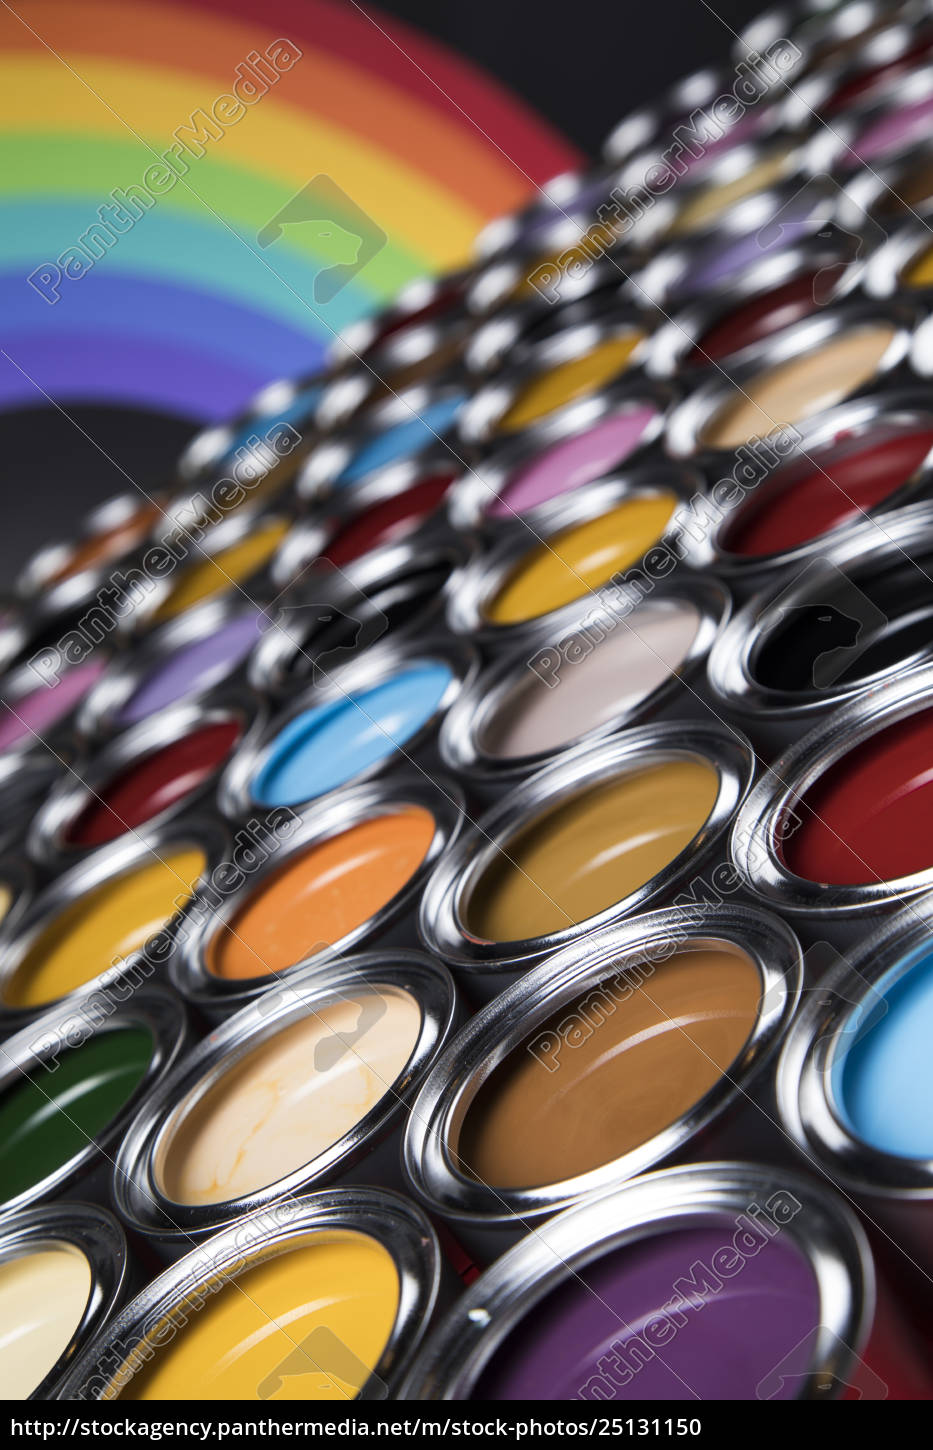 rainbow, colors, , open, cans, of, paint - 25131150